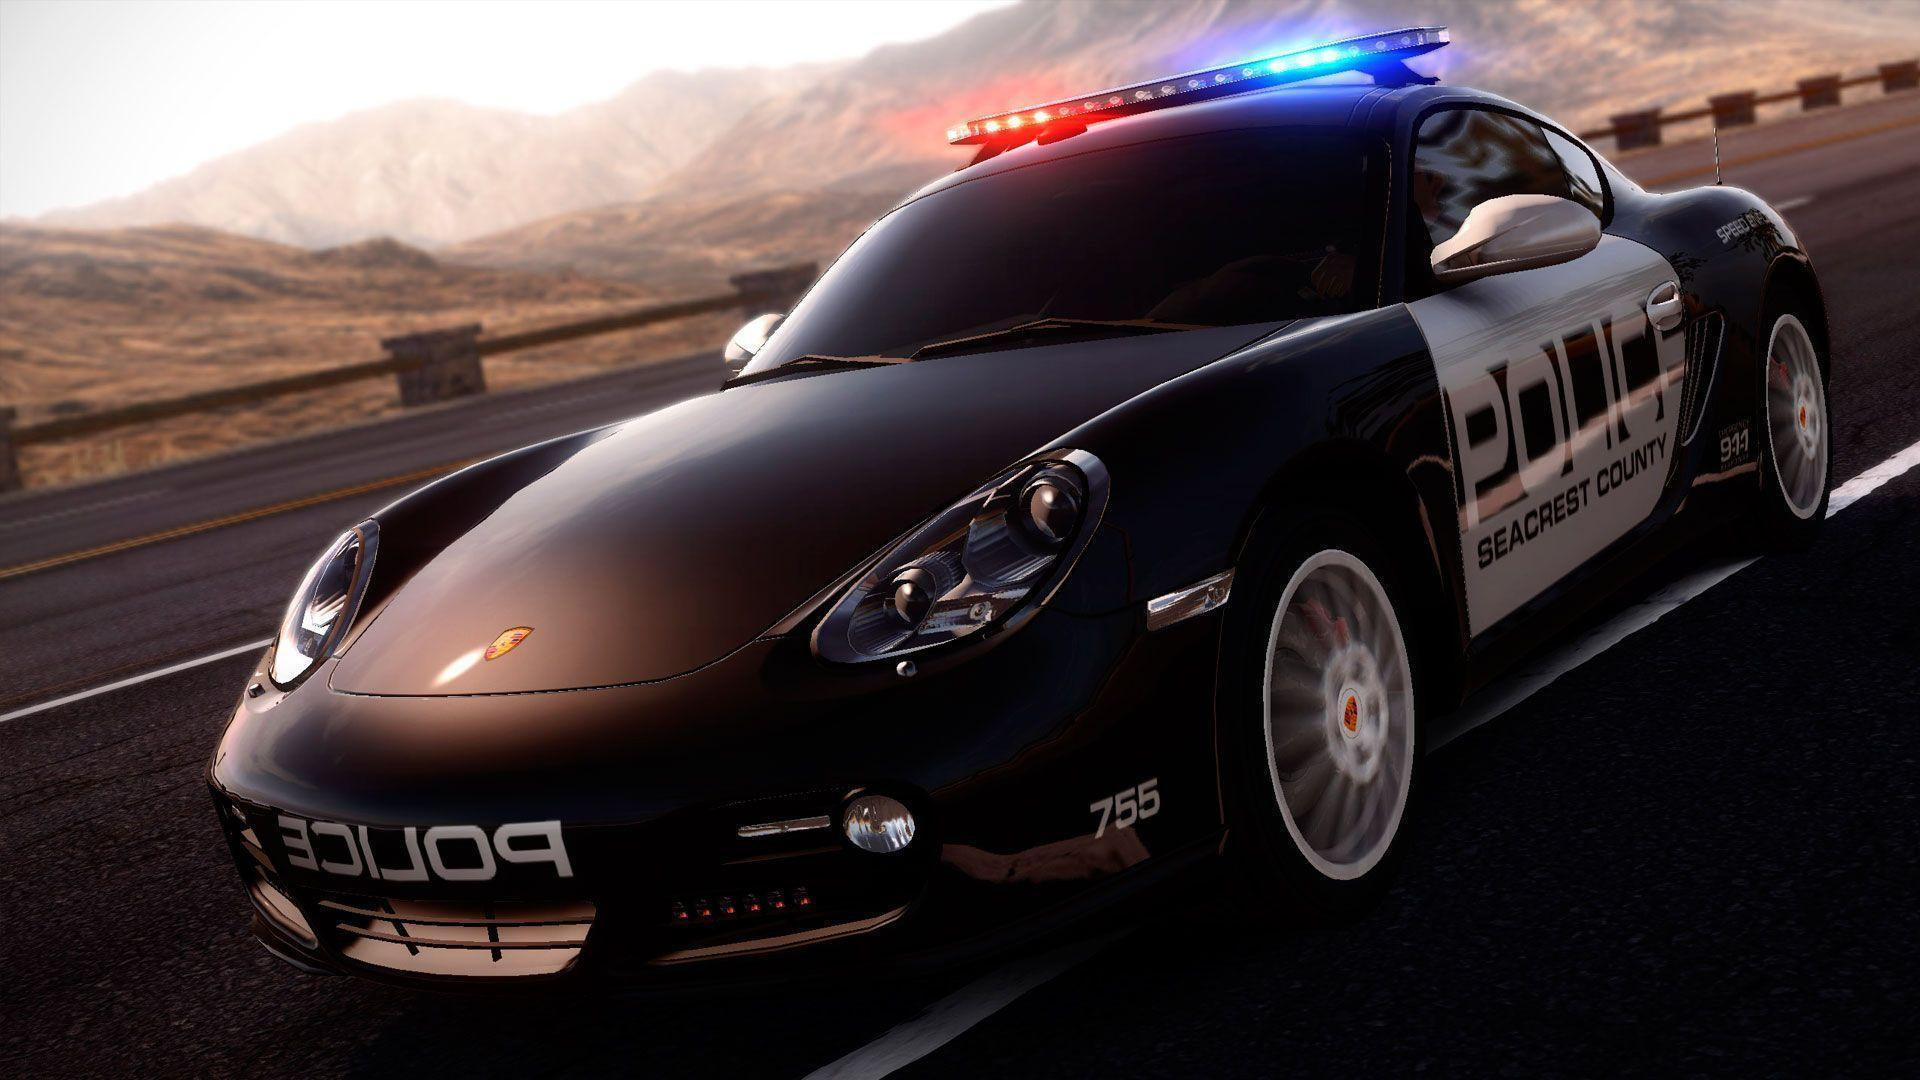 Picture 2016, Police Car Wallpapers for Windows 8